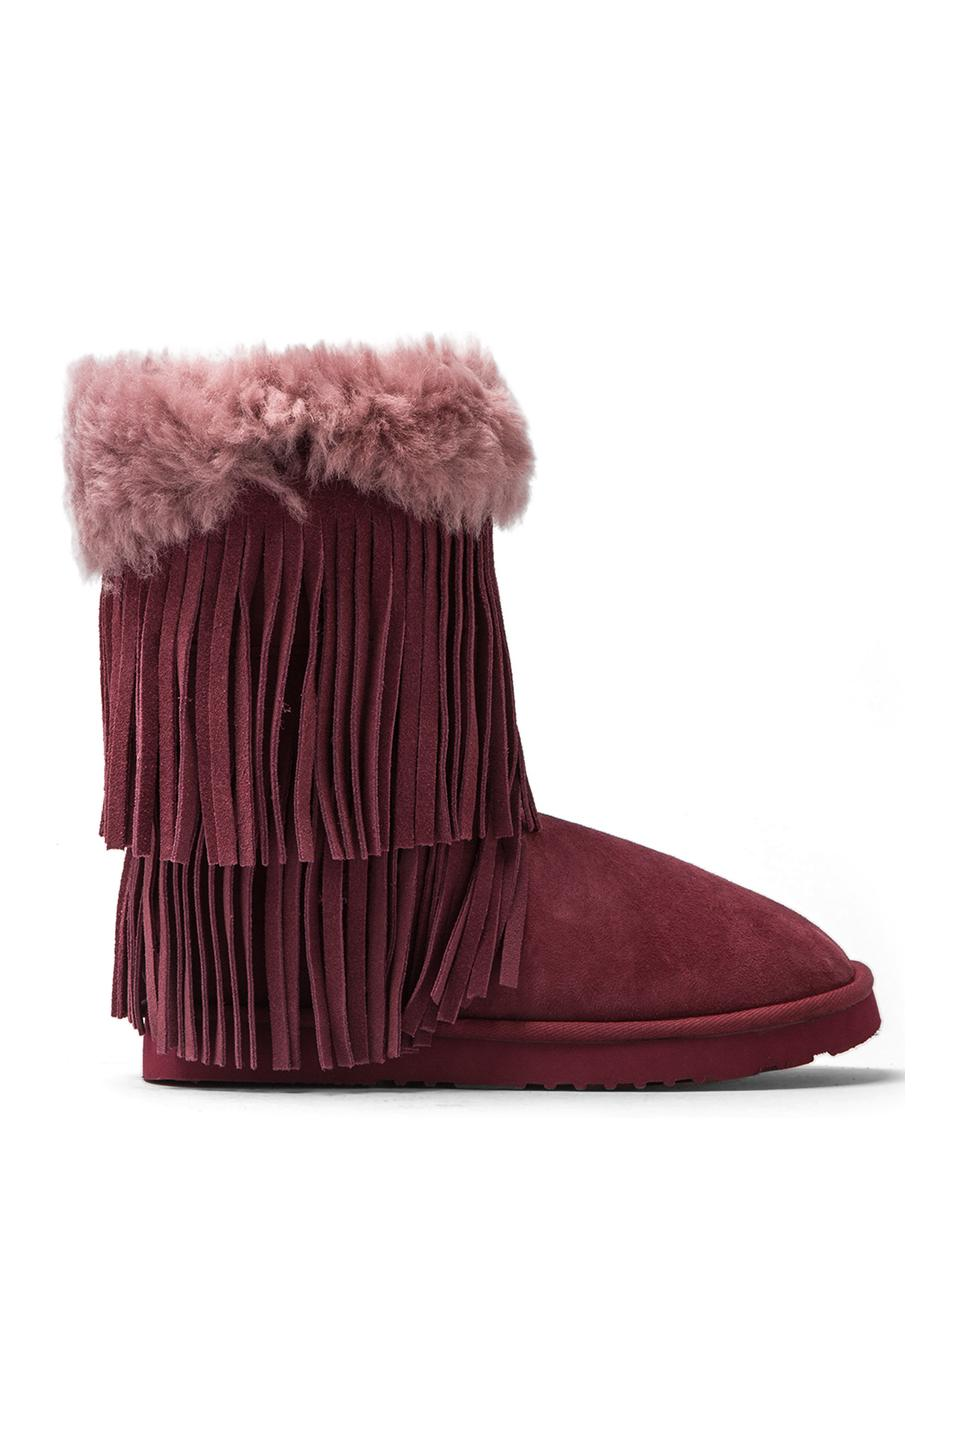 Koolaburra Haley II Boots with Twinface Sheepskin in Tawny Port